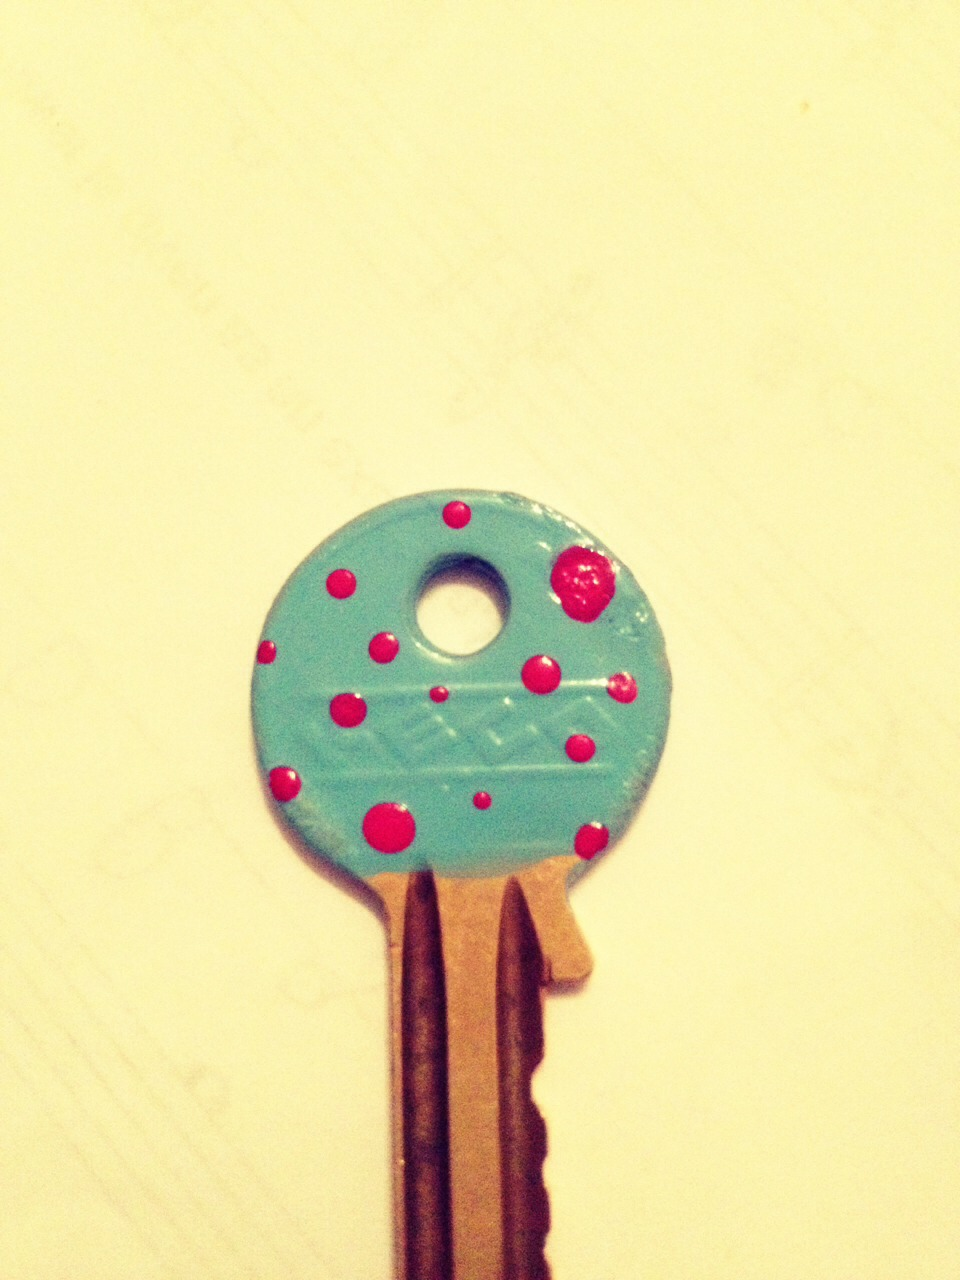 Start by painting your key using nail varnish